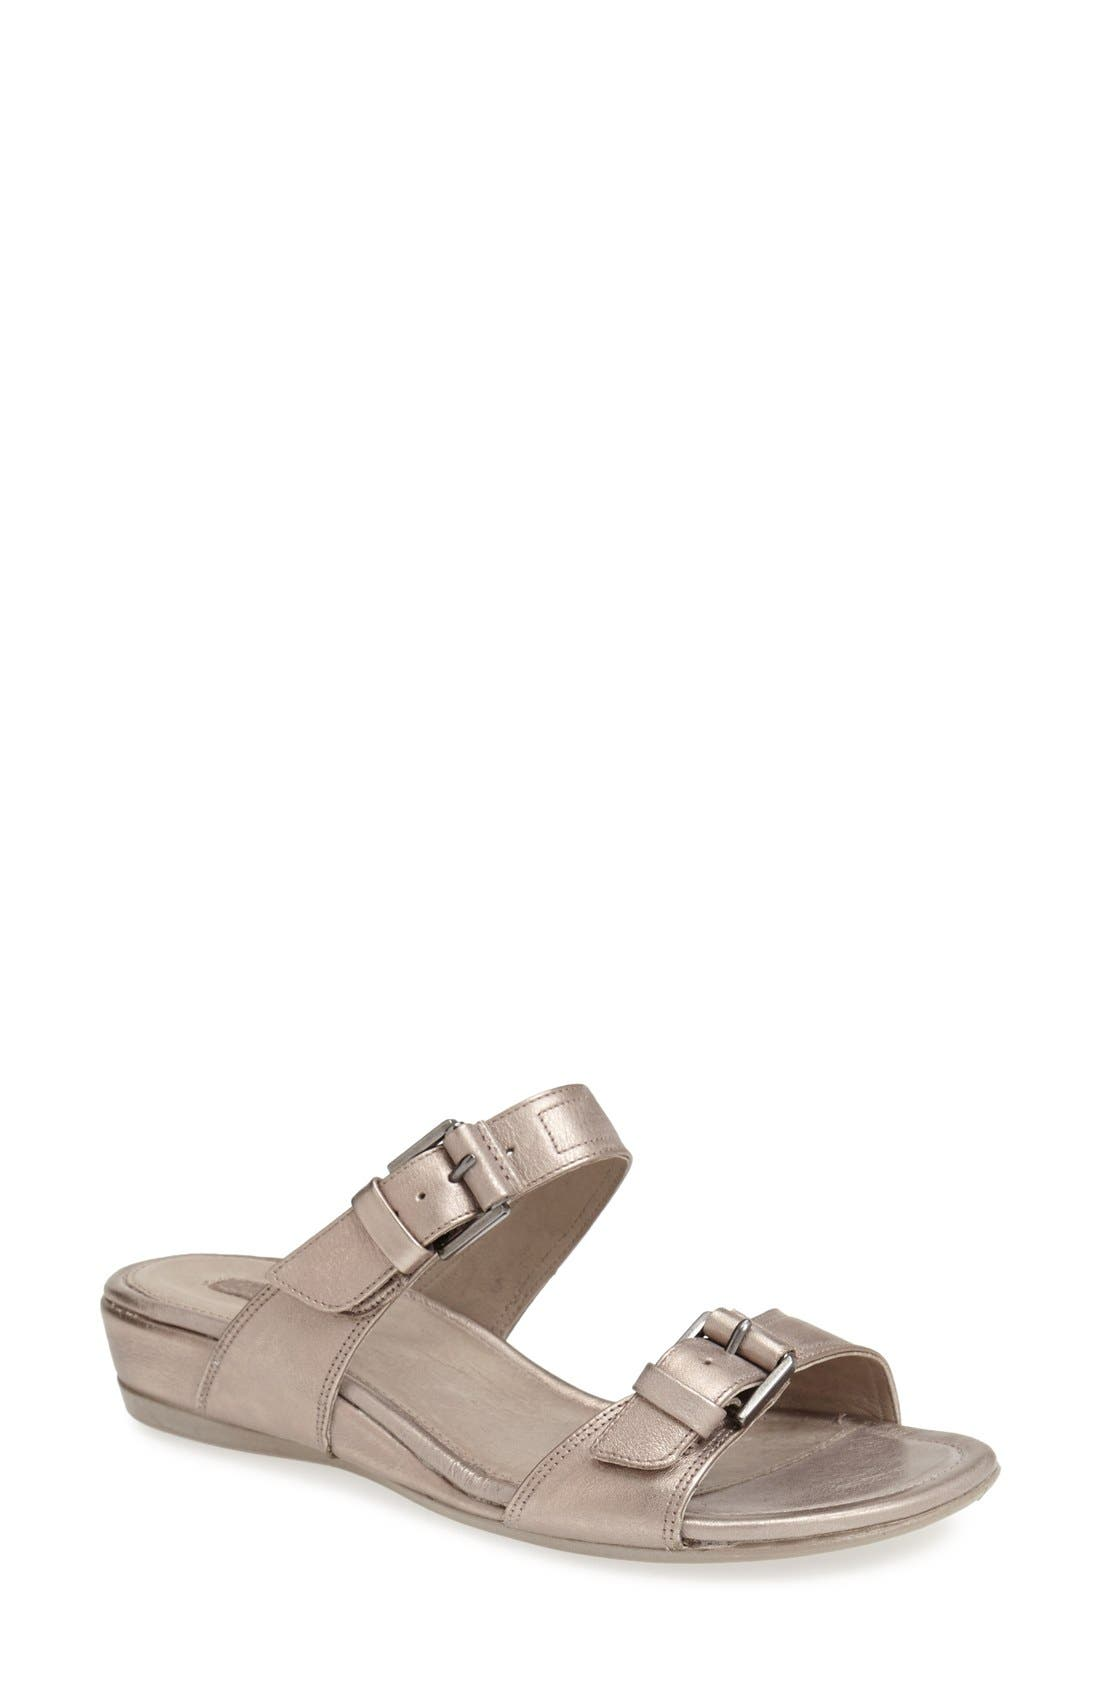 Alternate Image 1 Selected - ECCO 'Touch 25' Leather Slide Sandal